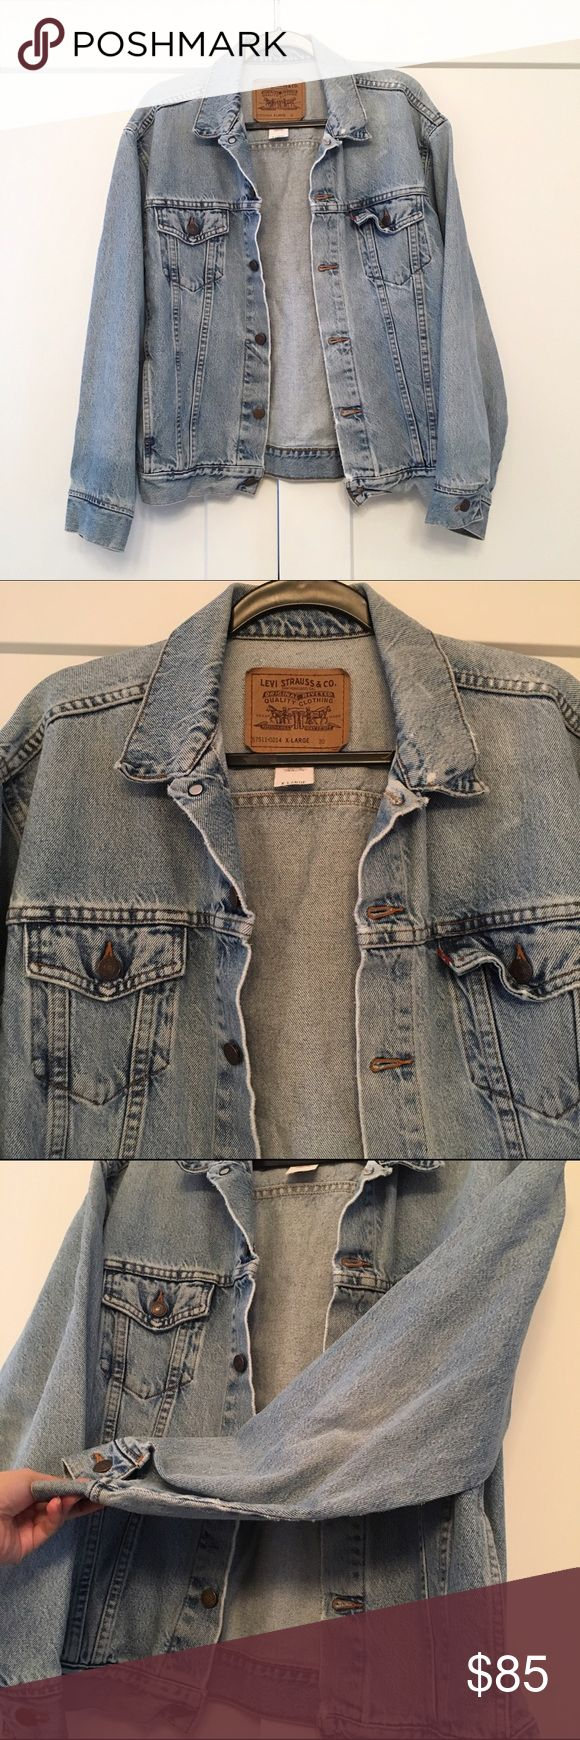 Vintage Levi's Denim Jean Jacket Levi's boyfriend jean jacket, size XL on tag - I'm pretty sure it's a women's XL. Can prob fit a S-XL depending on desired fit and it you want an oversized look. I'm going to mark it a L on this listing. I'm a small and I could wear it as an oversized jacket and it looks super cool. Will also list it under men's as this can def be unisex! Small signs of wear here and there which adds to the distressed feel. Overall excellent condition! Can give measurements…